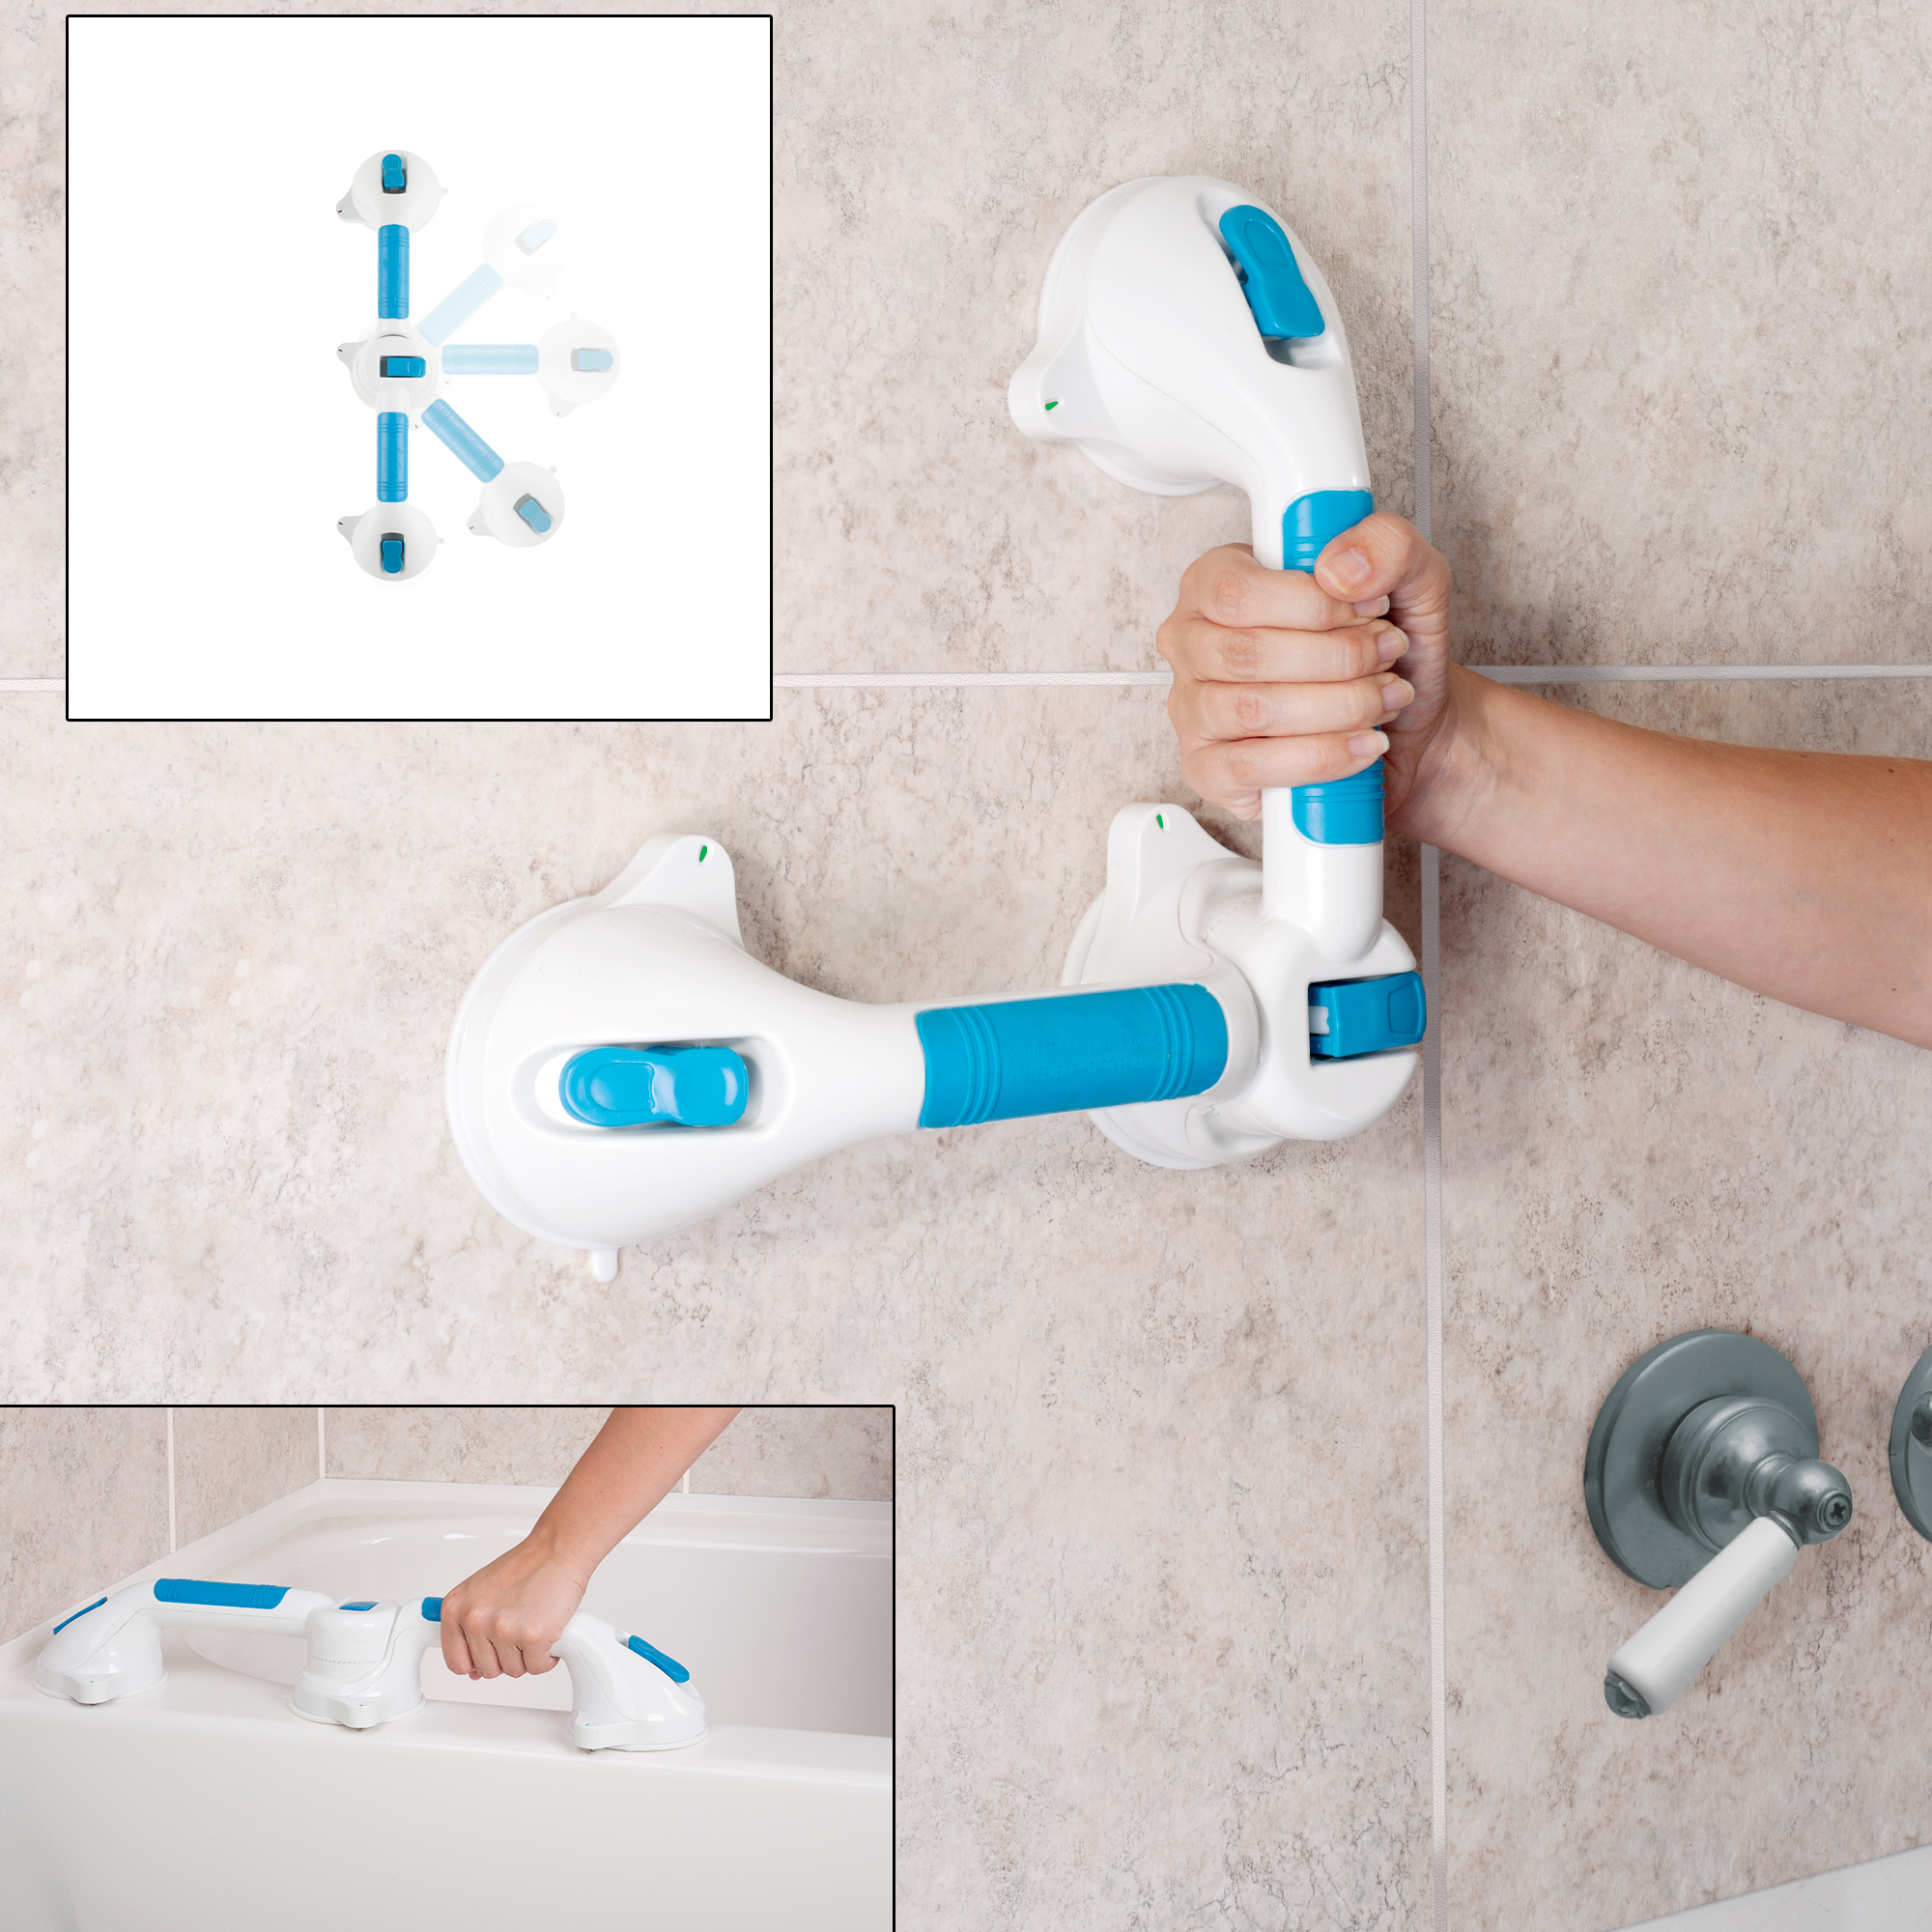 Bluestone Dual Grip Suction Grab Bar 45281ebfe2ab